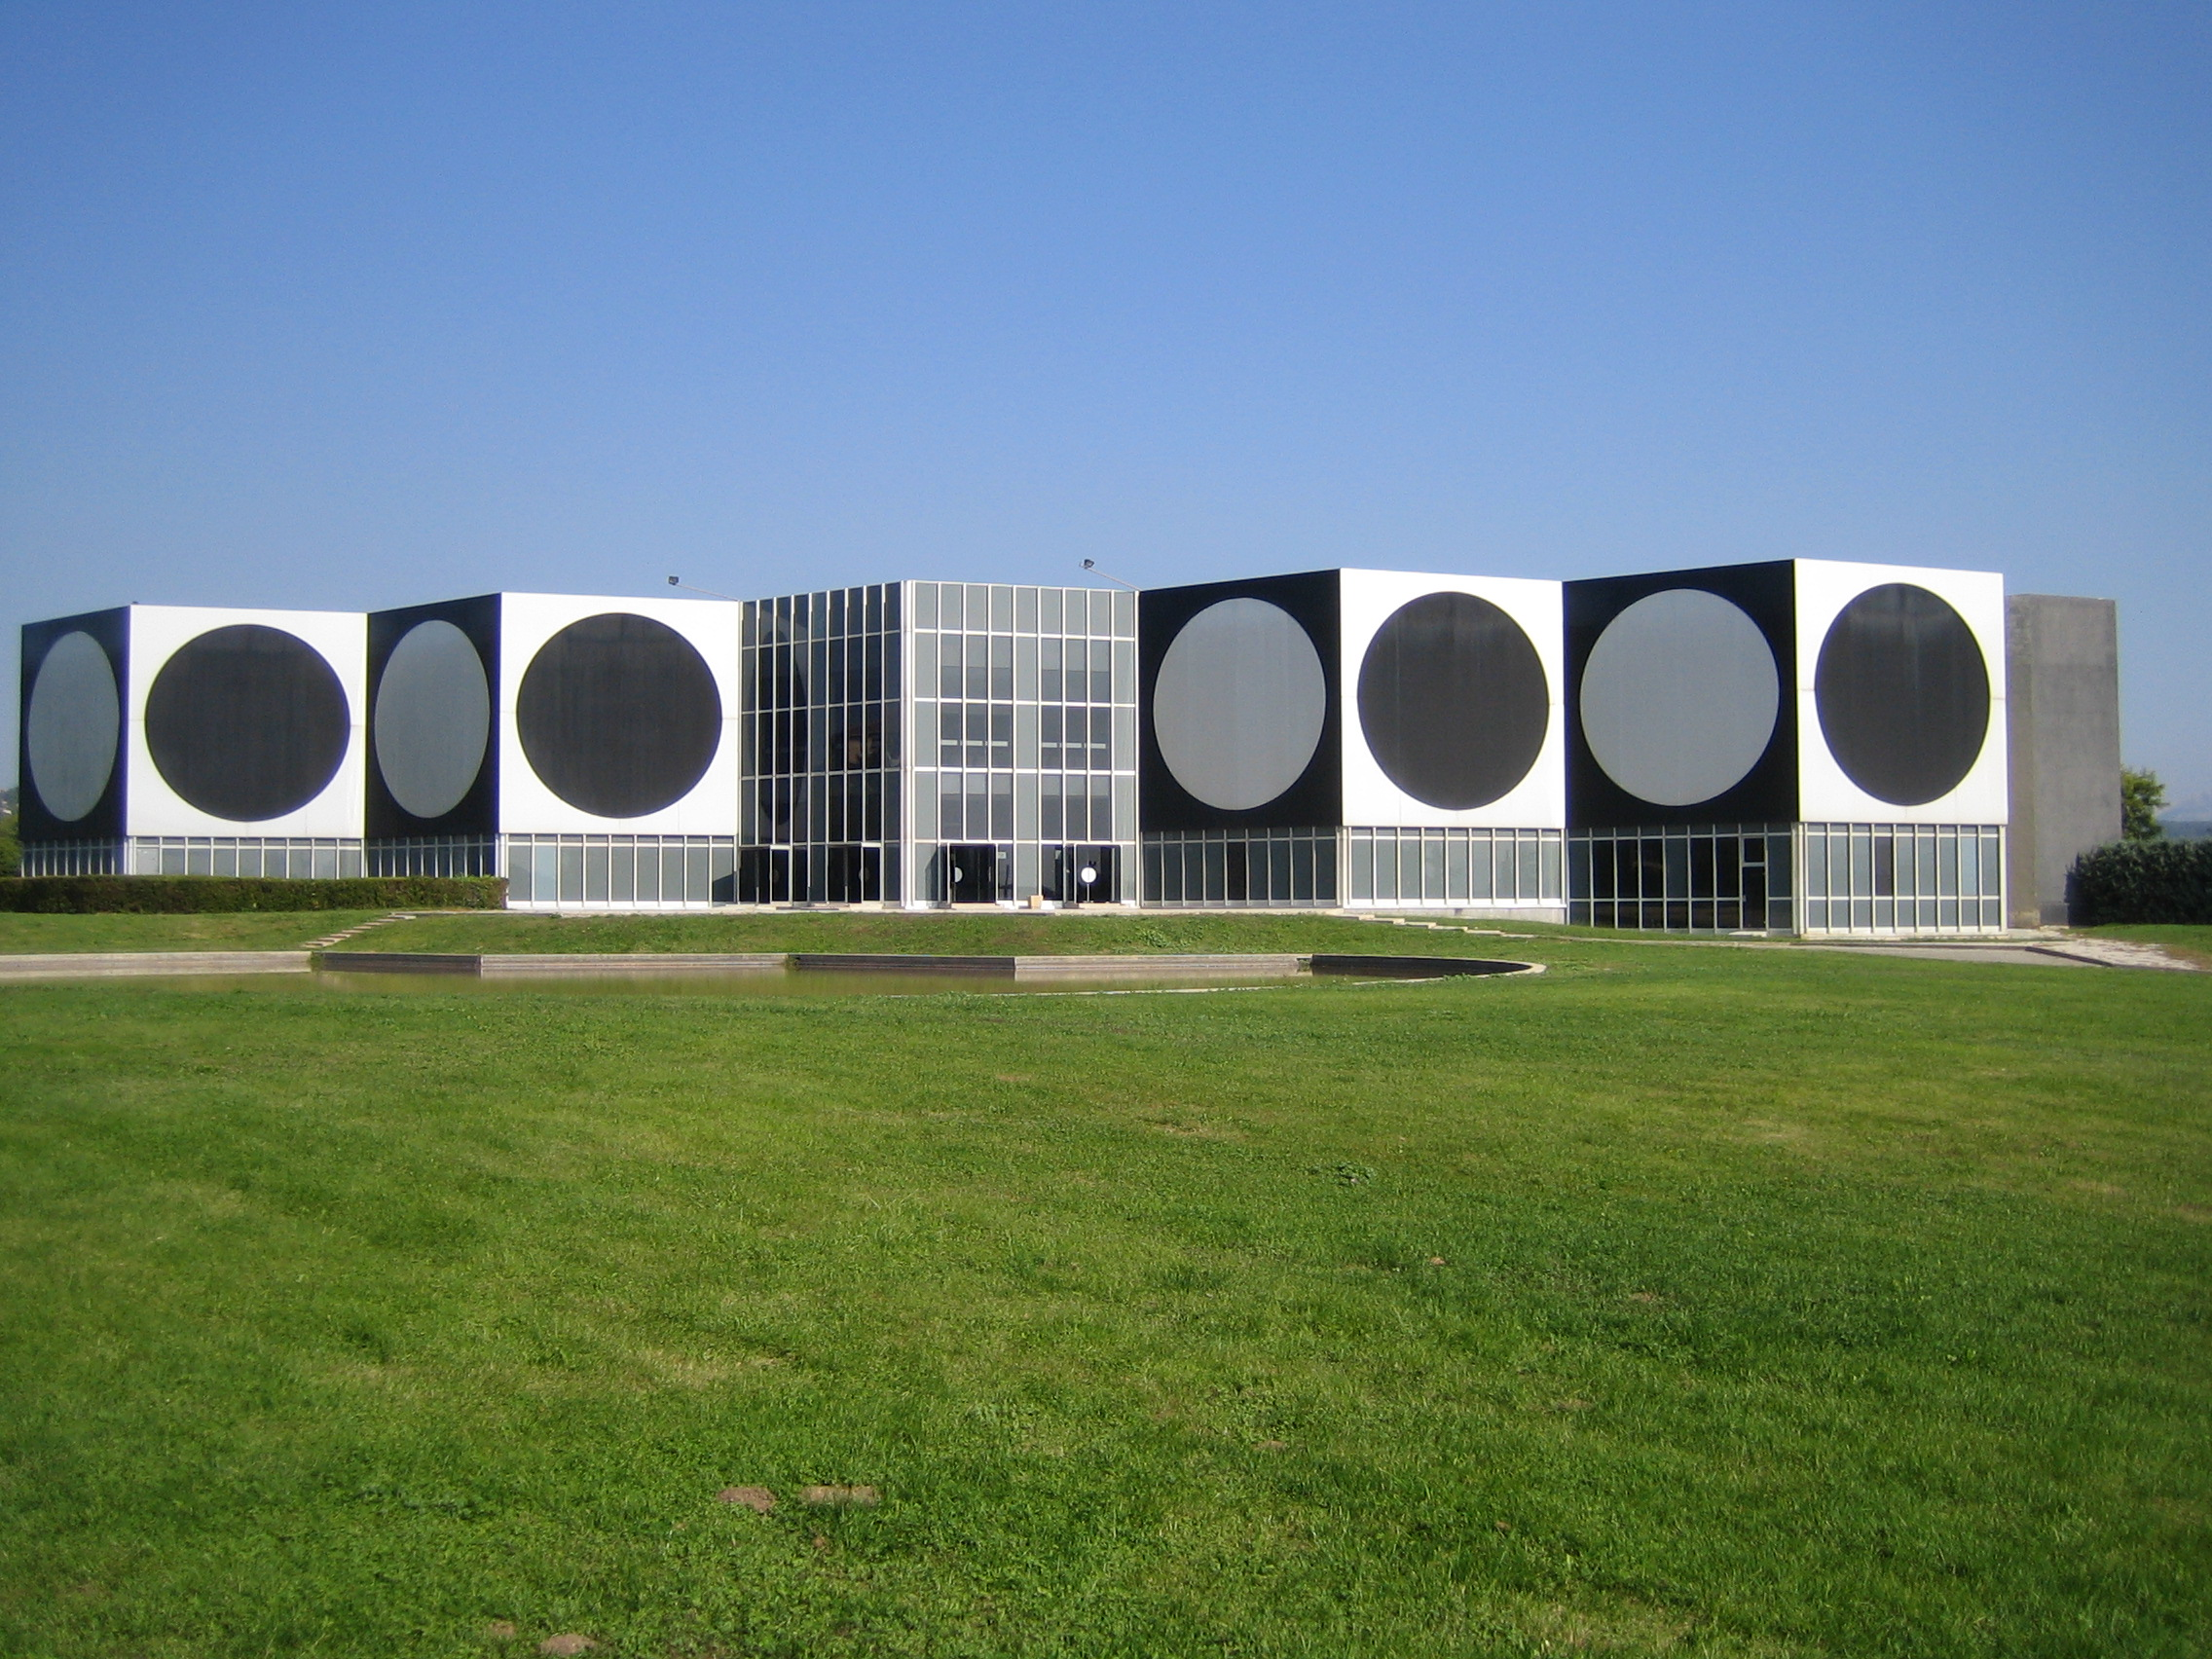 Op art uses color to create - Museum Fondation Vasarely In Aix En Provence